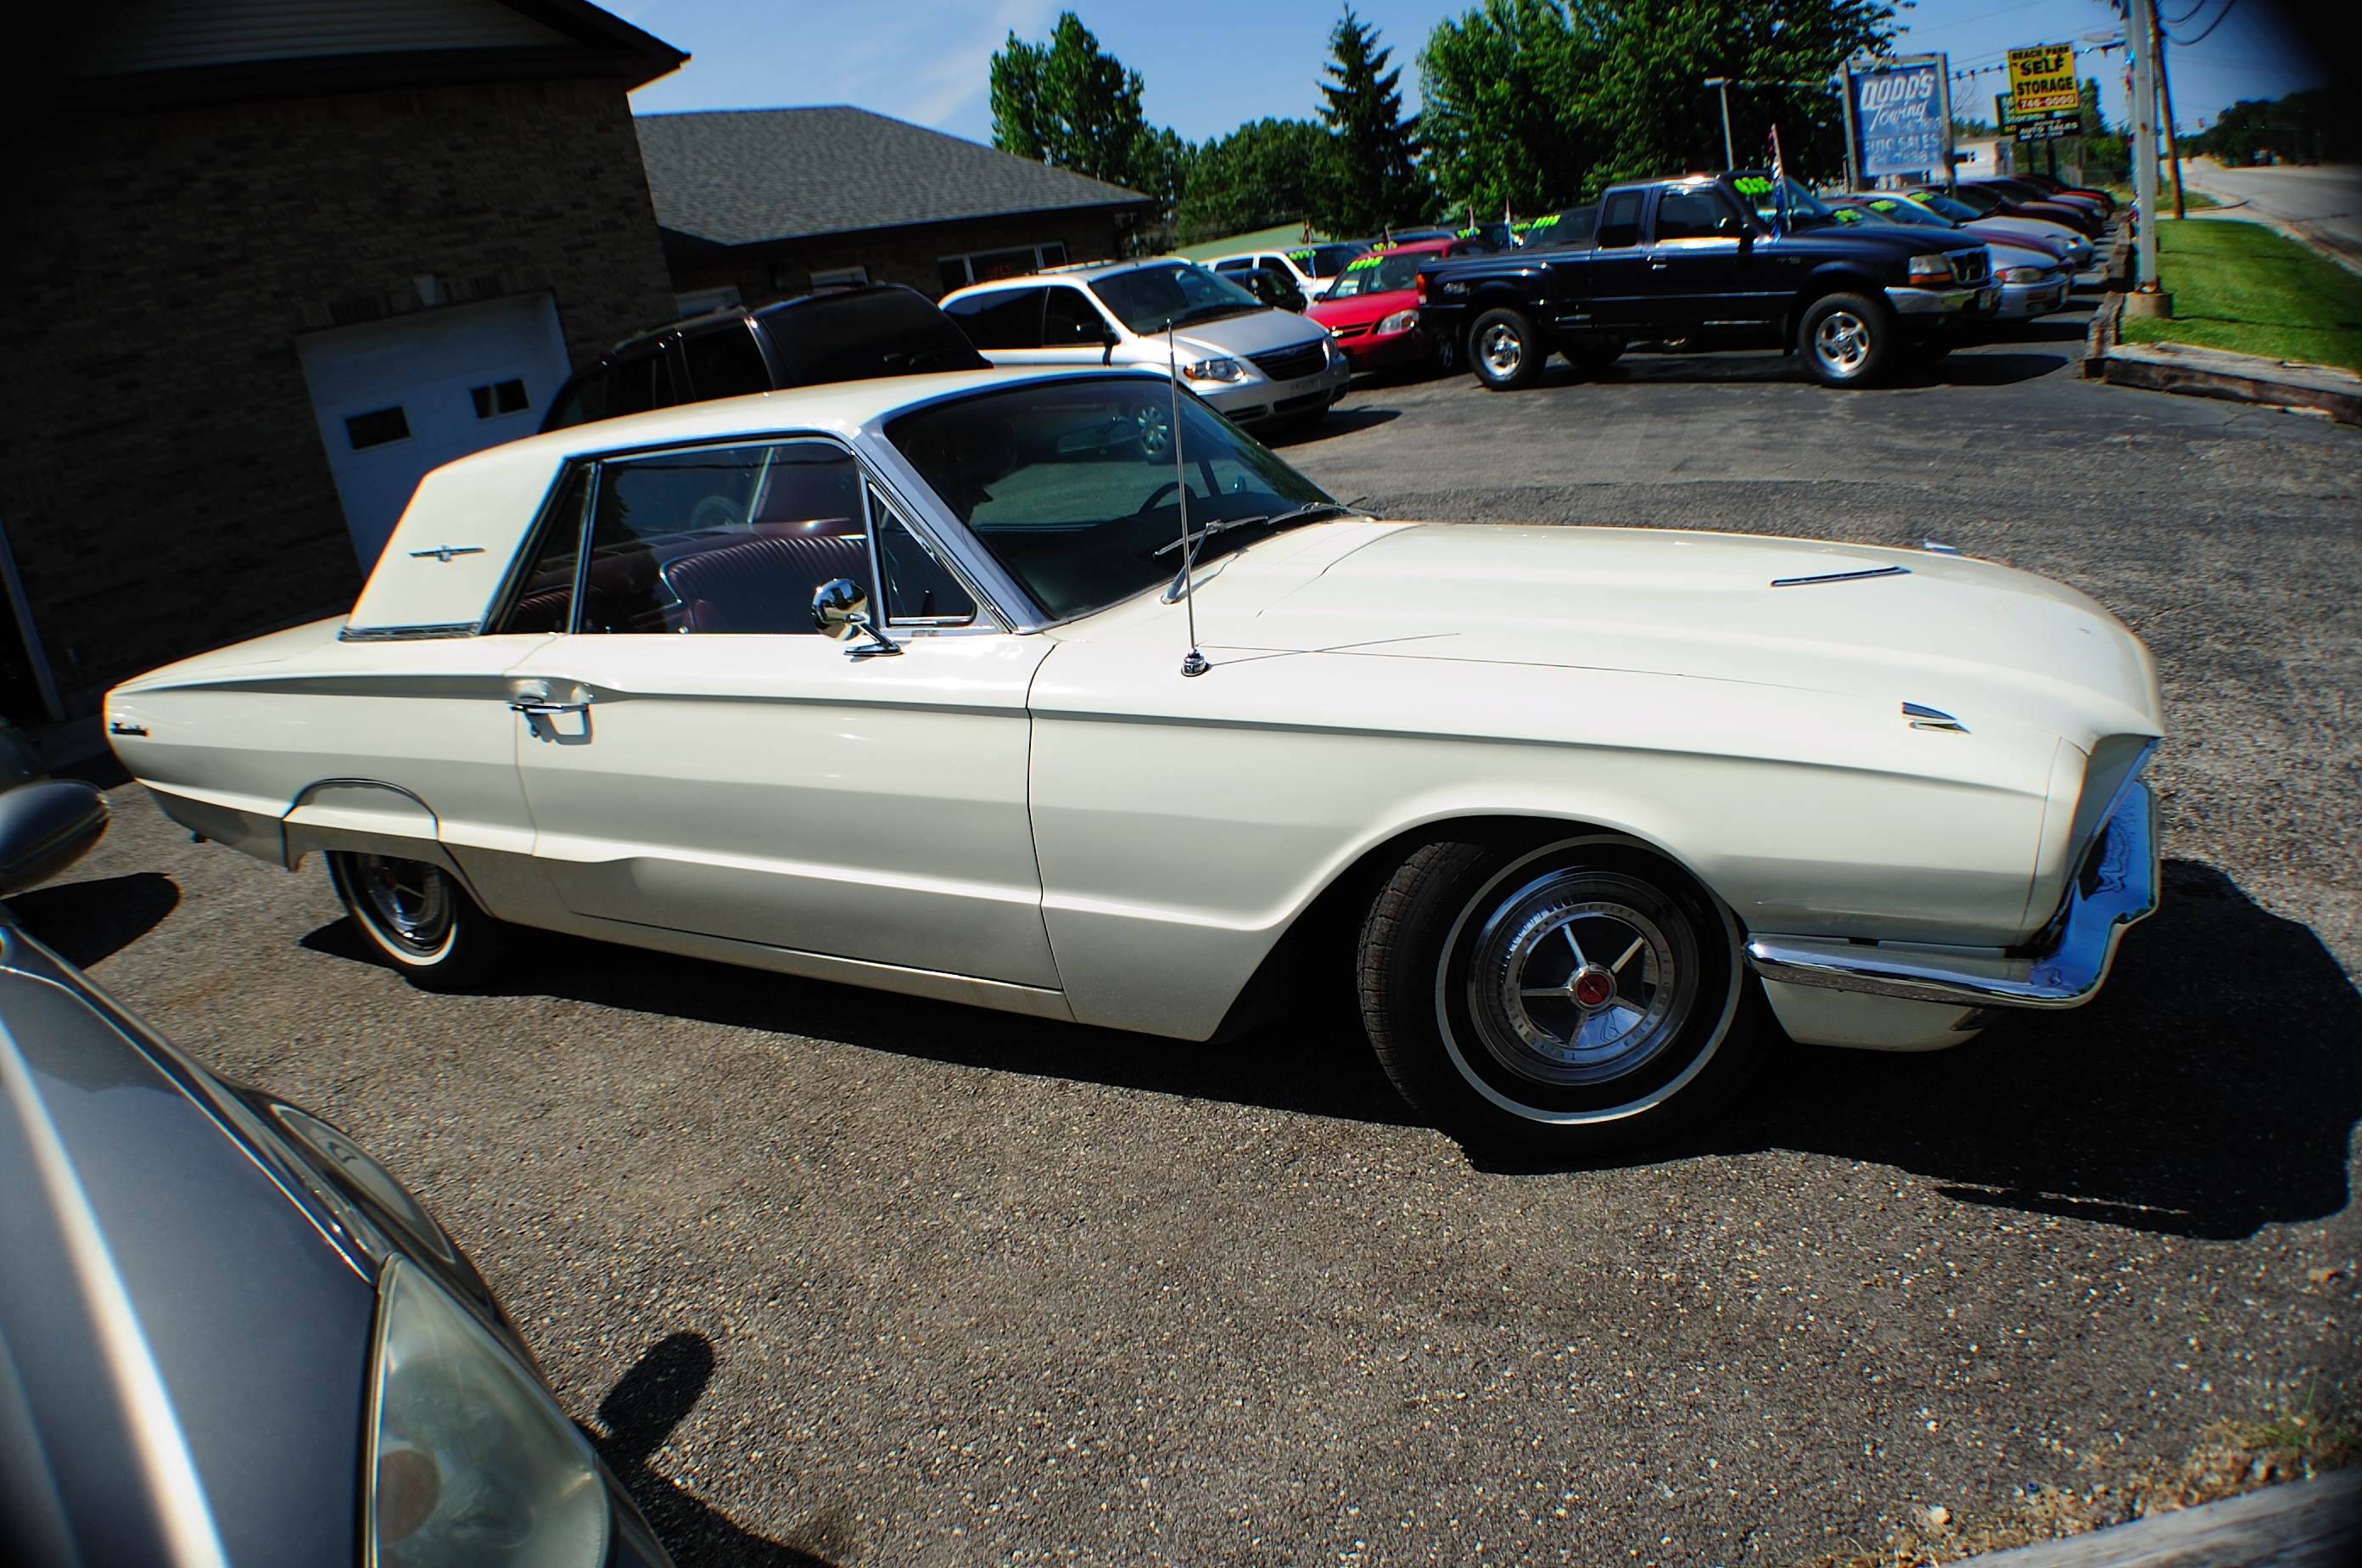 1966 Ford Thunderbird White Classic Sport Coupe used Car Sale Waukegan Kenosha